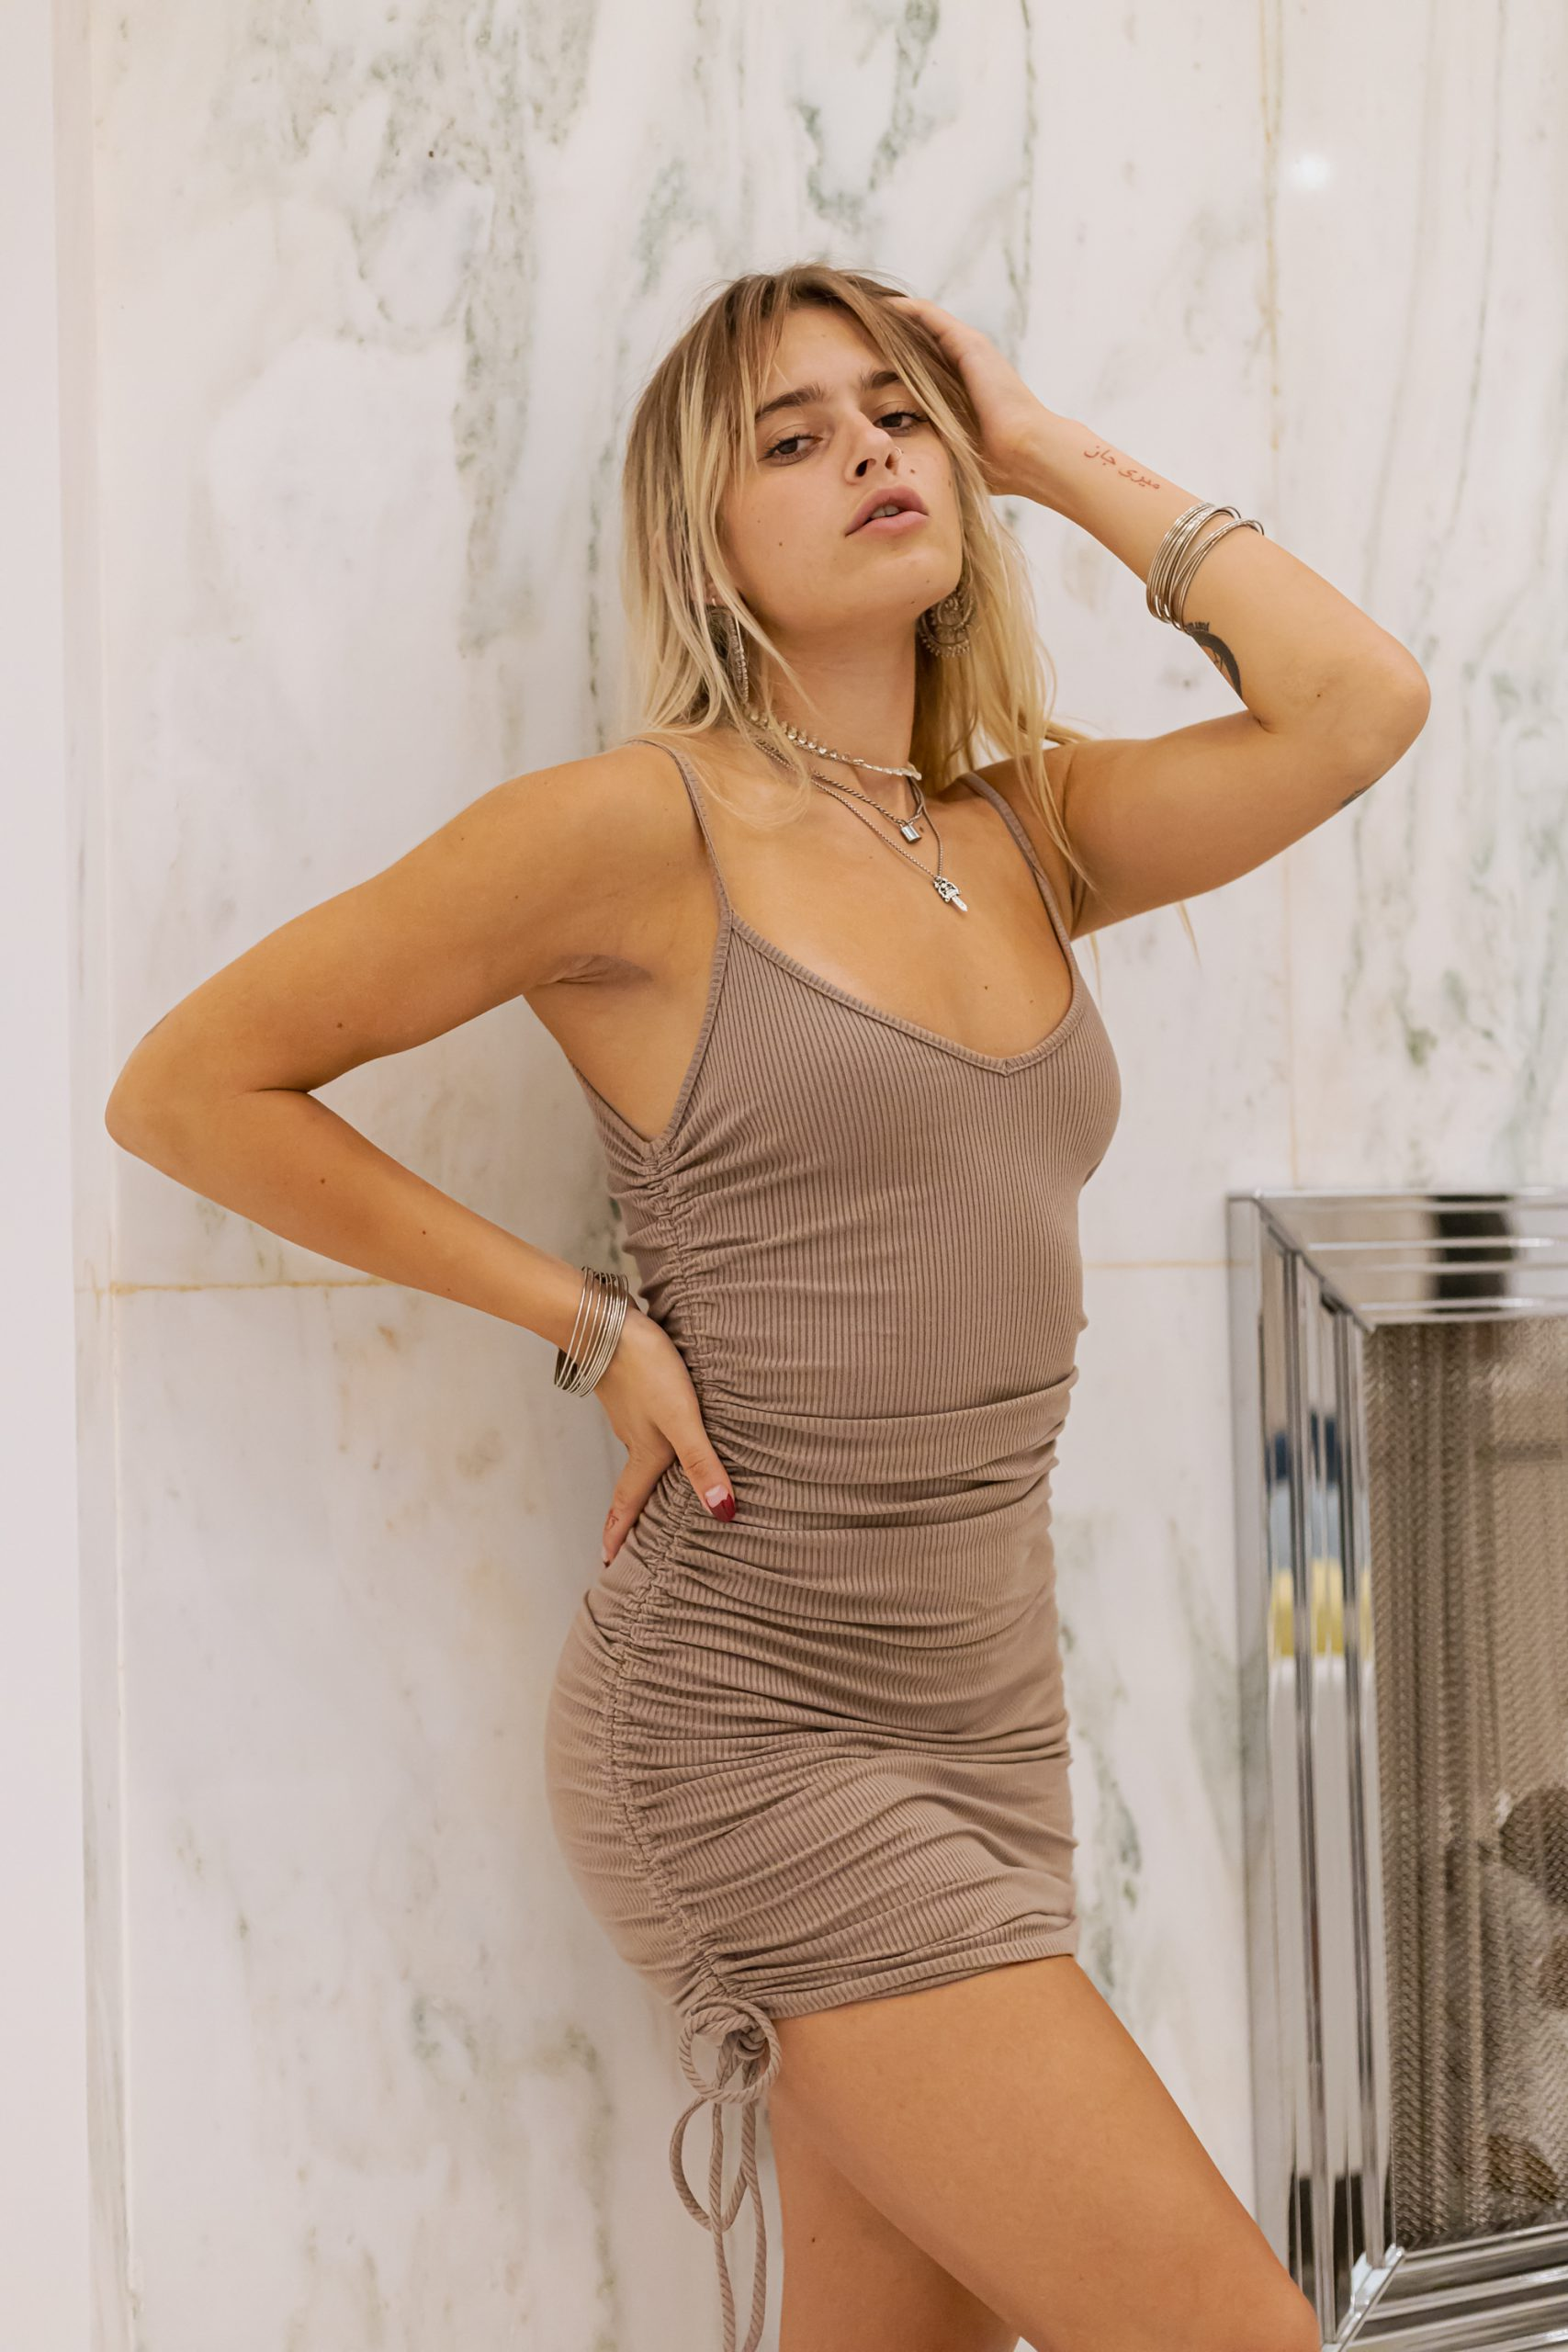 Youthful model with short scrunched dress